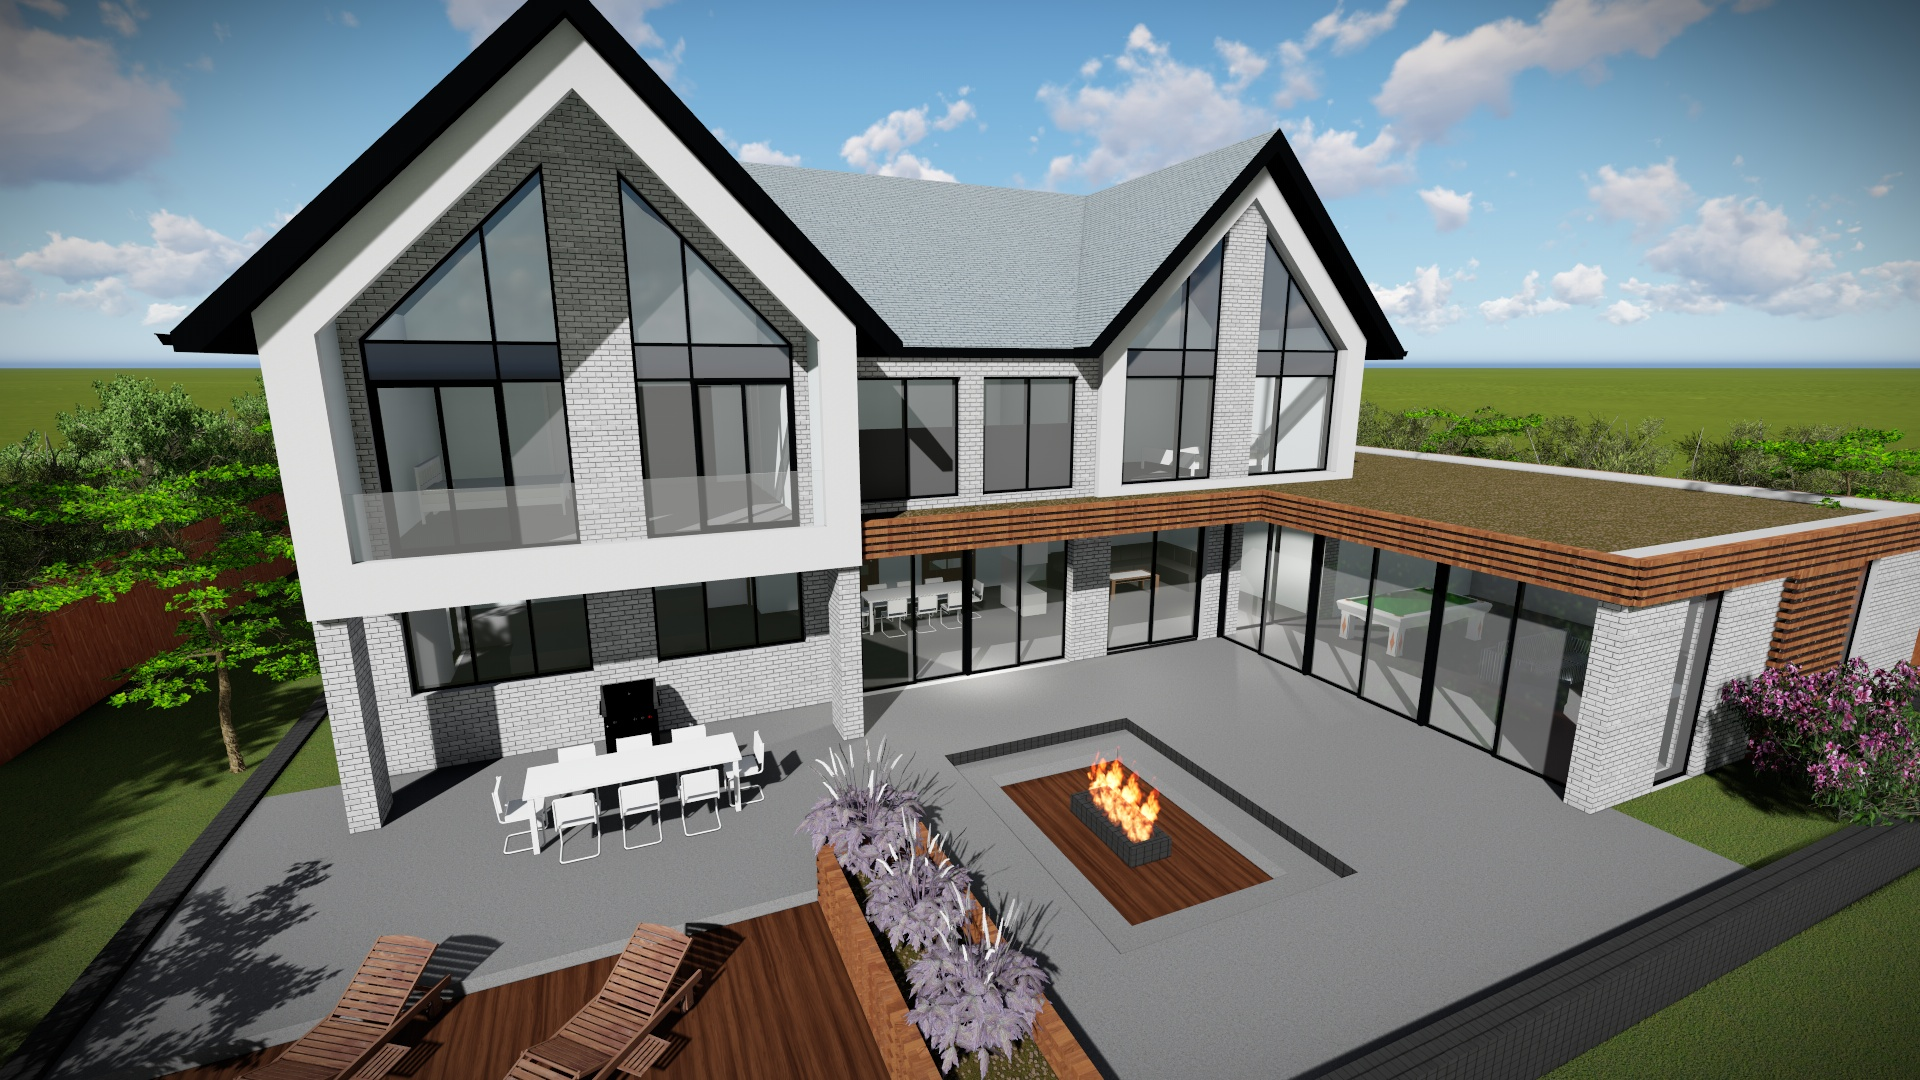 Rear view design for self build development - Provided by Carter-Zub Building Consultancy